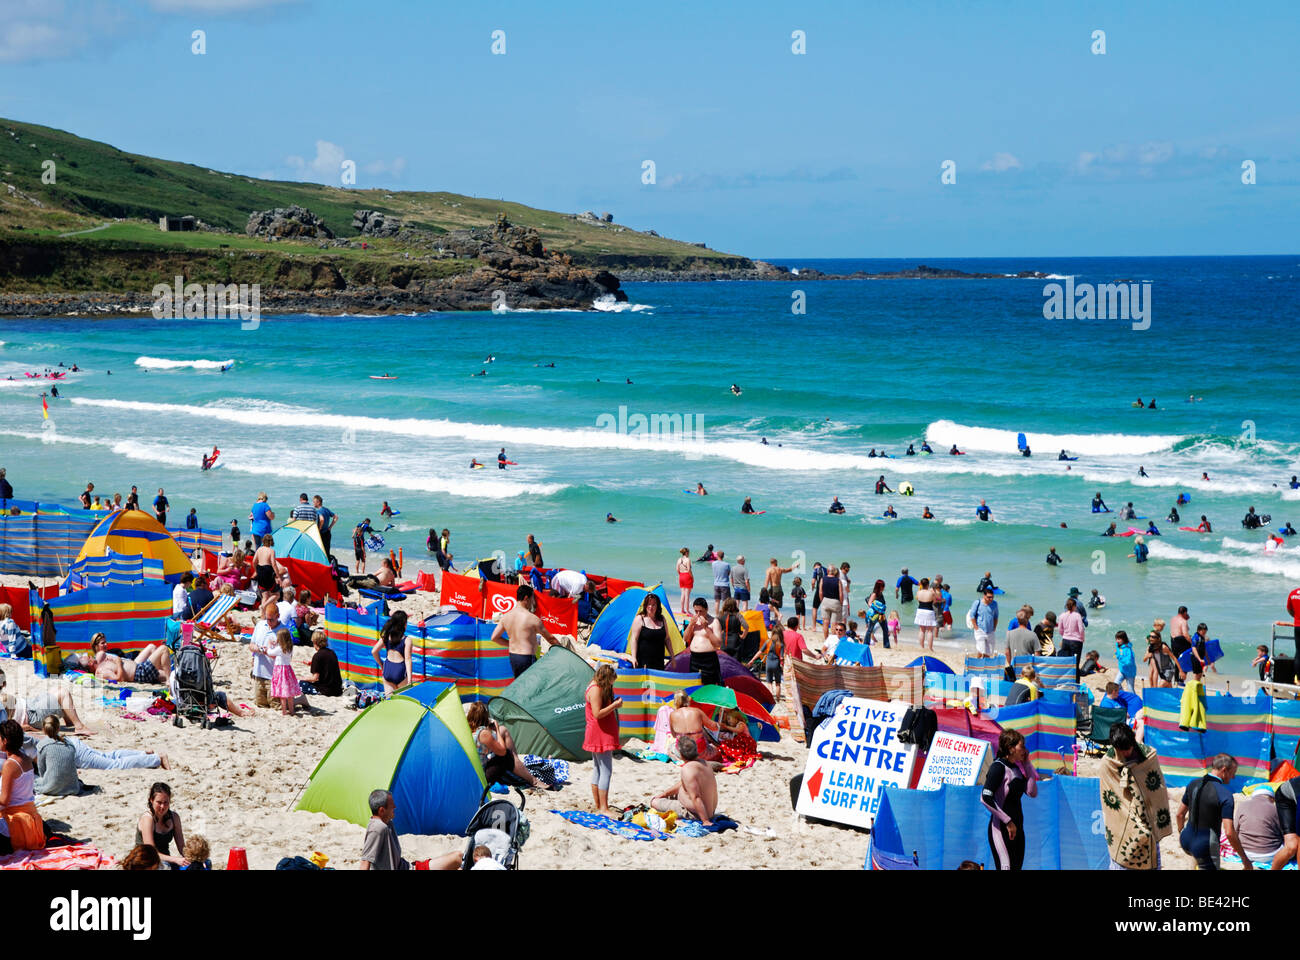 a busy porthmeor beach st.ives cornwall uk in the middle of the summer holidays - Stock Image